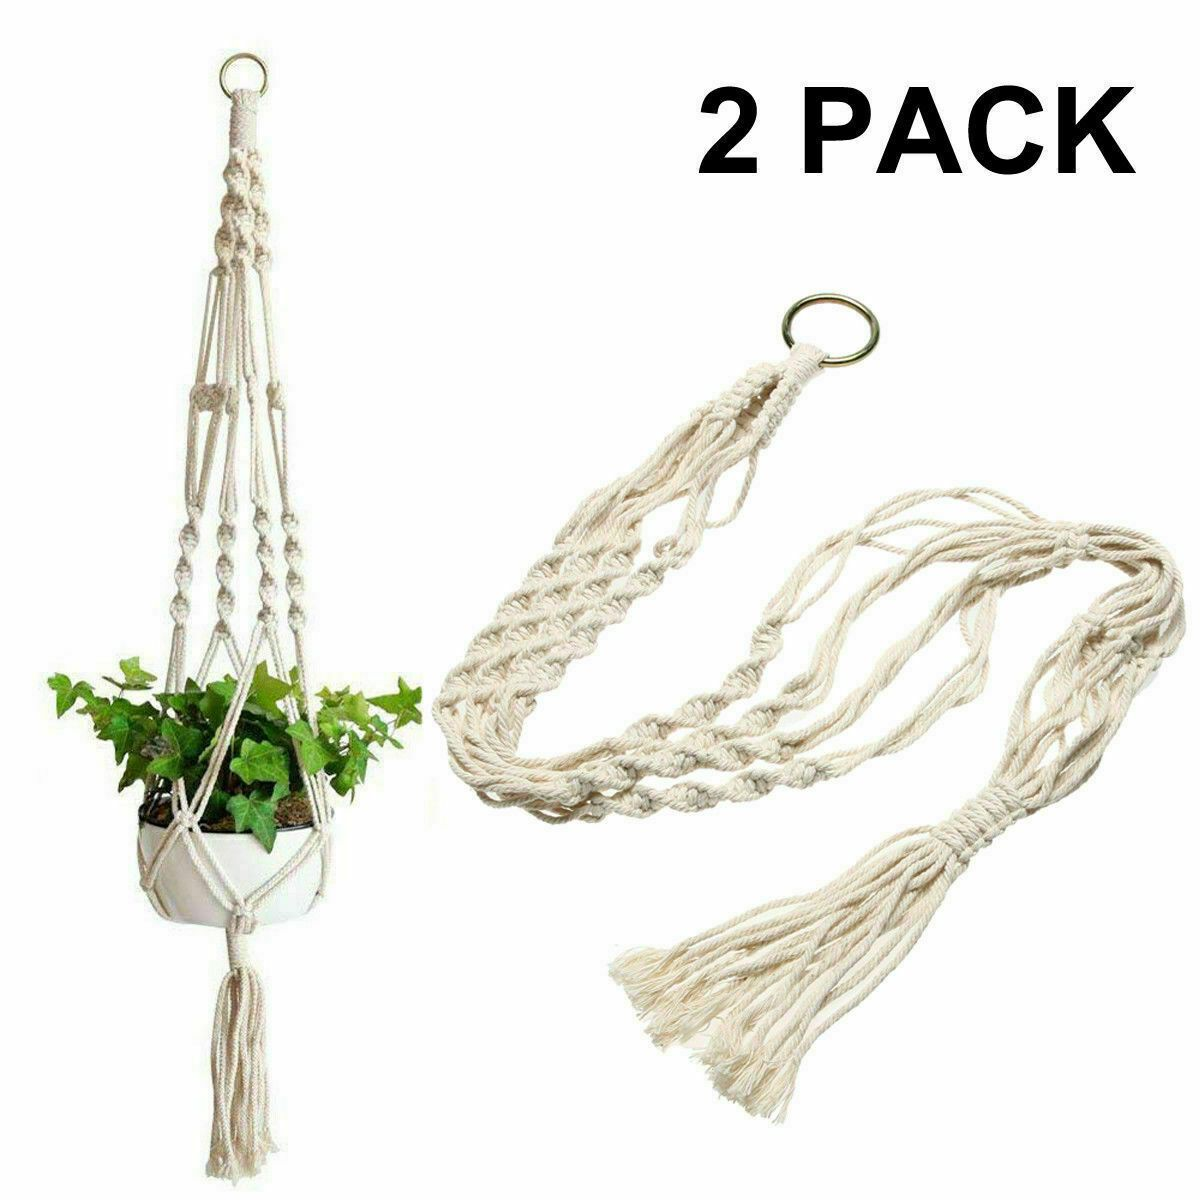 2 Pack Plant Hanger Flower Pot Plant Holder Large 4 Legs Macrame Jute 41 Inch In 2020 Plant Holders Plant Hanger Metal Plant Hangers